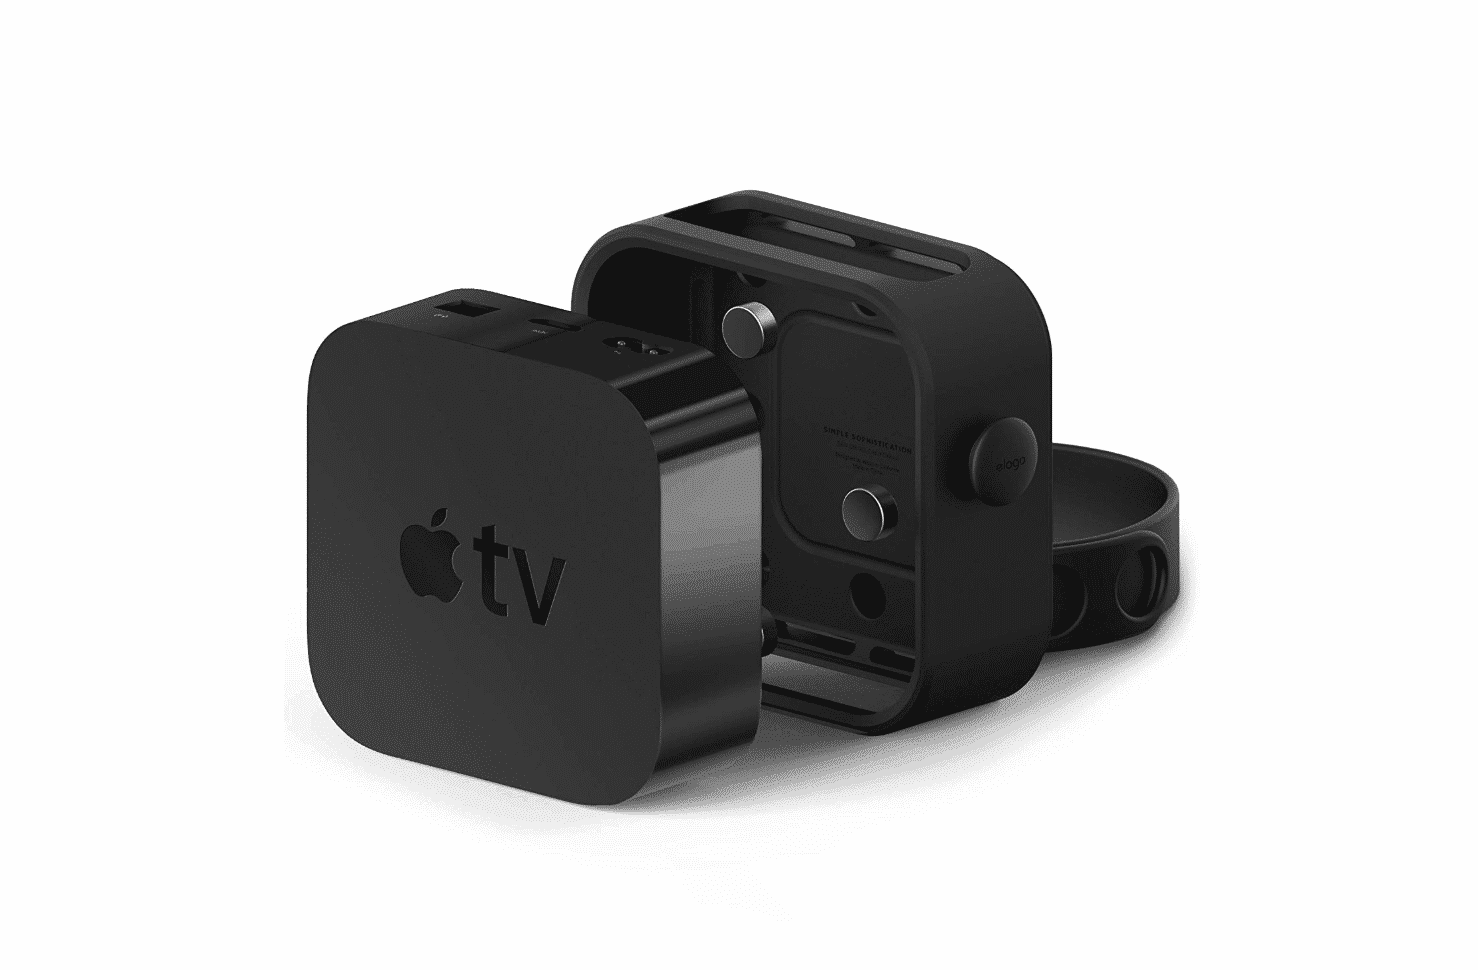 Organize Your Apple TV with an Elago Mount for $16